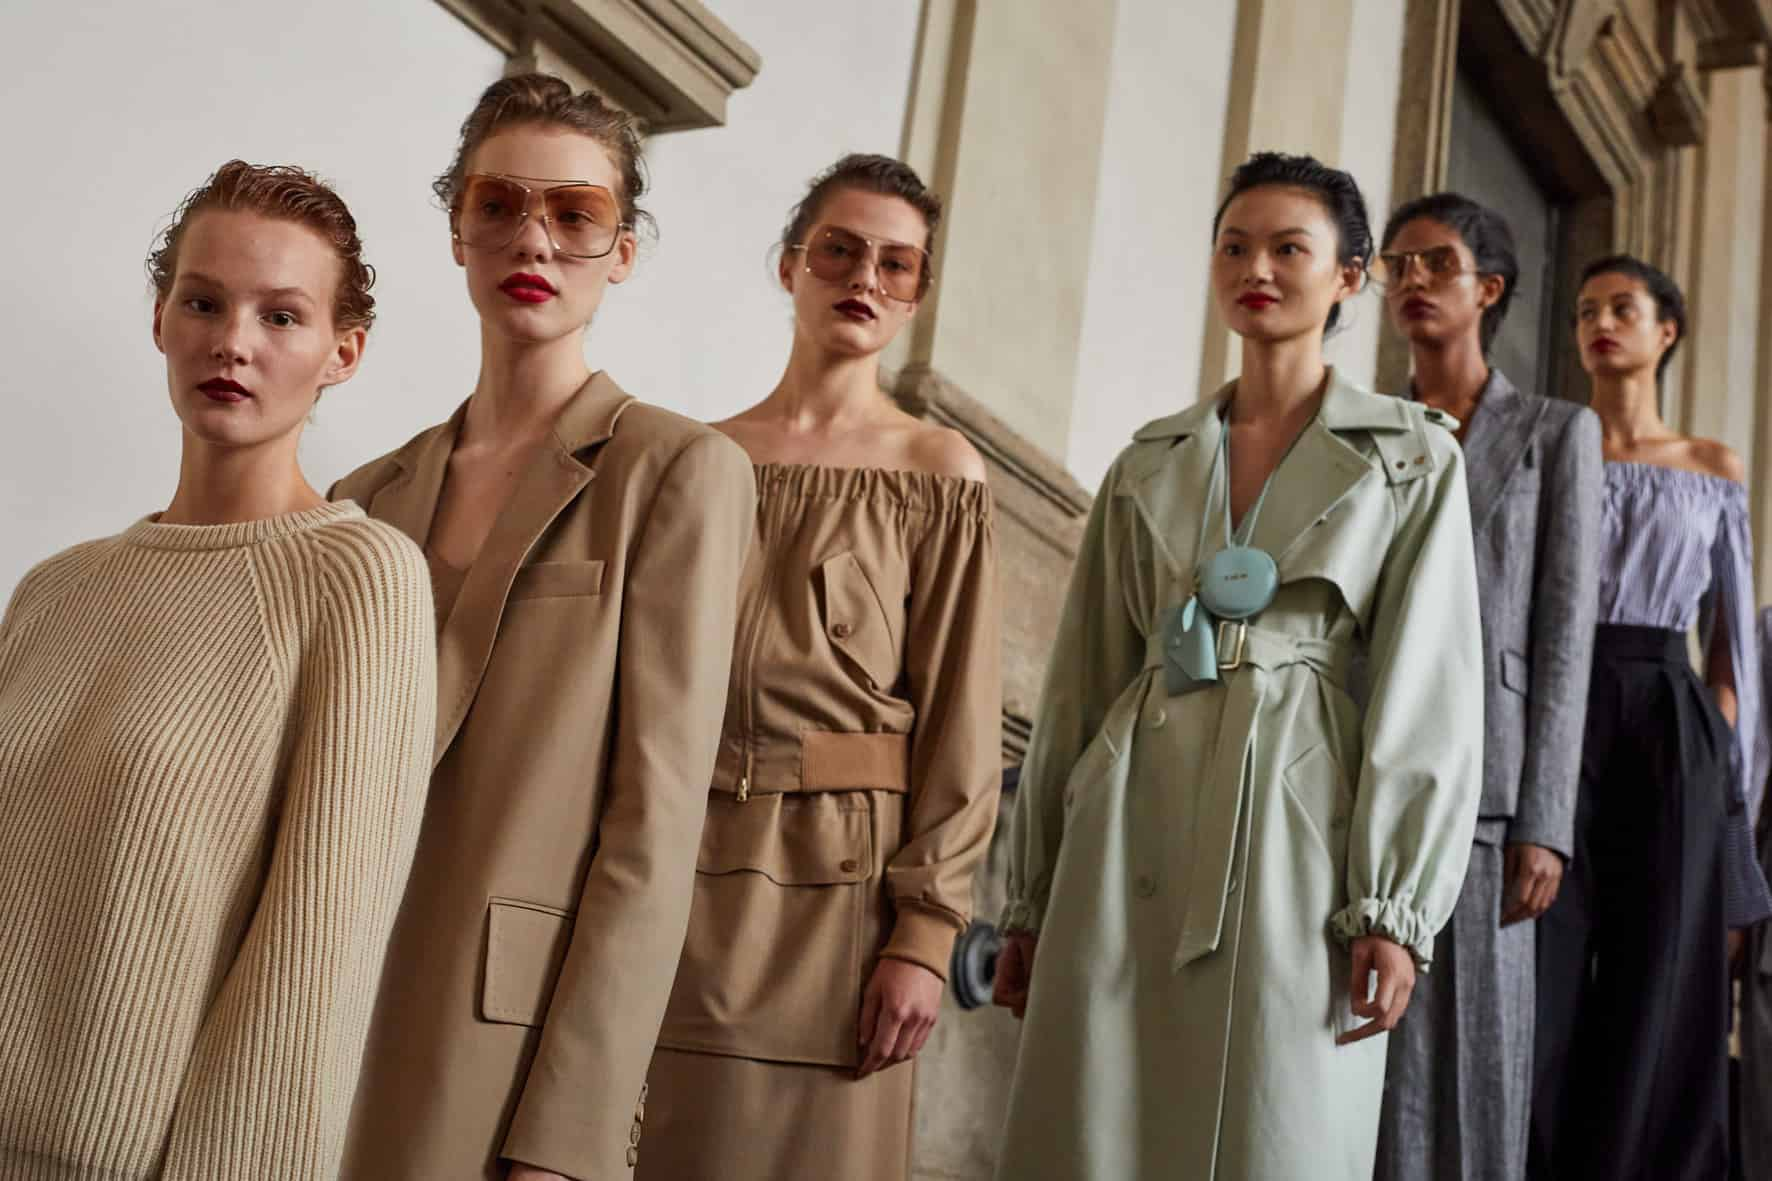 Max Mara Presents A Uniform For Women Ready To Rebuild The World - Daily Front Row